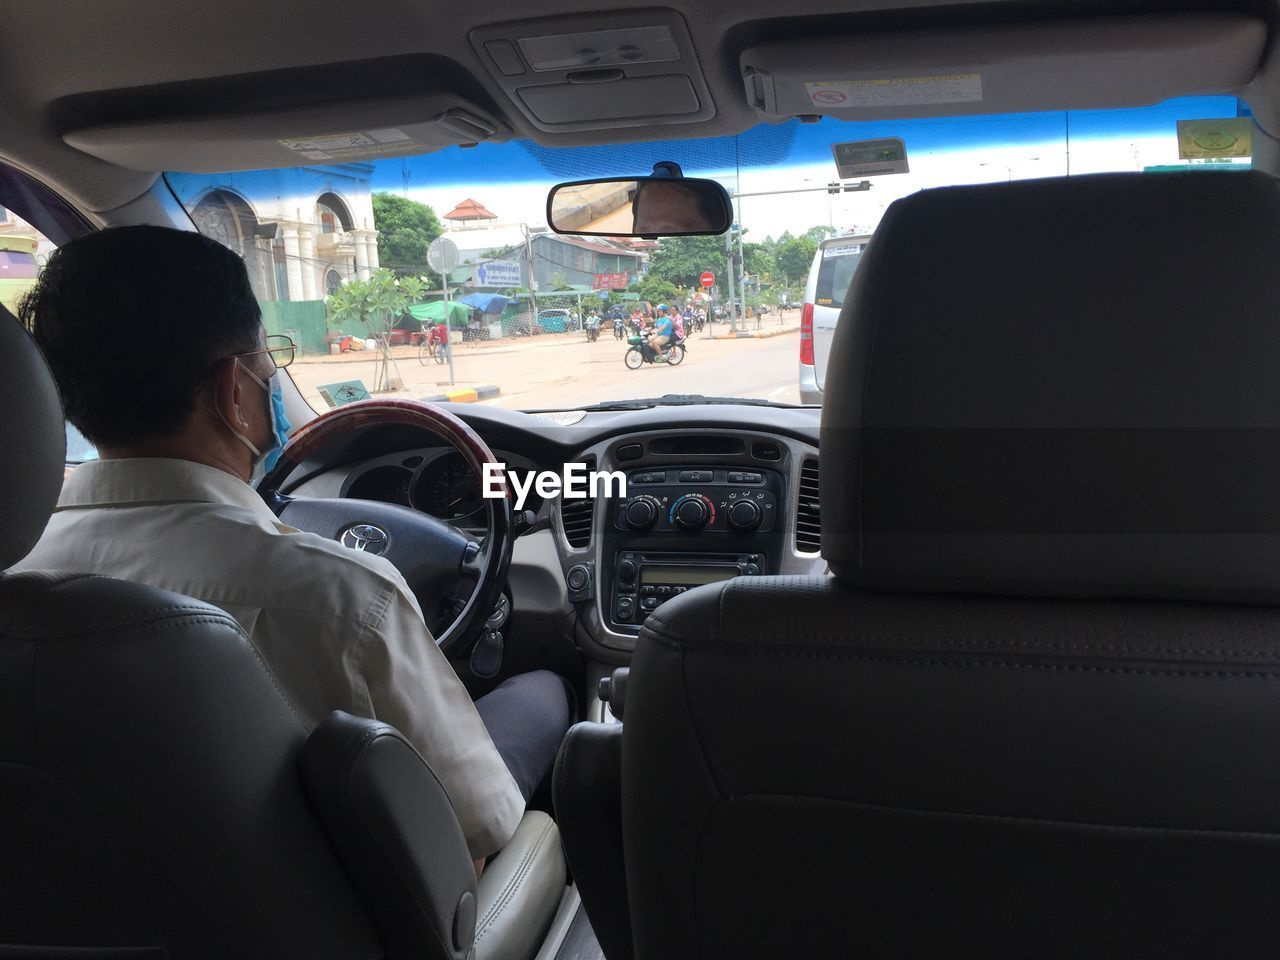 vehicle interior, transportation, car interior, car, land vehicle, mode of transport, rear view, vehicle seat, driving, real people, windshield, travel, men, sitting, dashboard, journey, steering wheel, day, car point of view, lifestyles, passenger seat, one person, sky, people